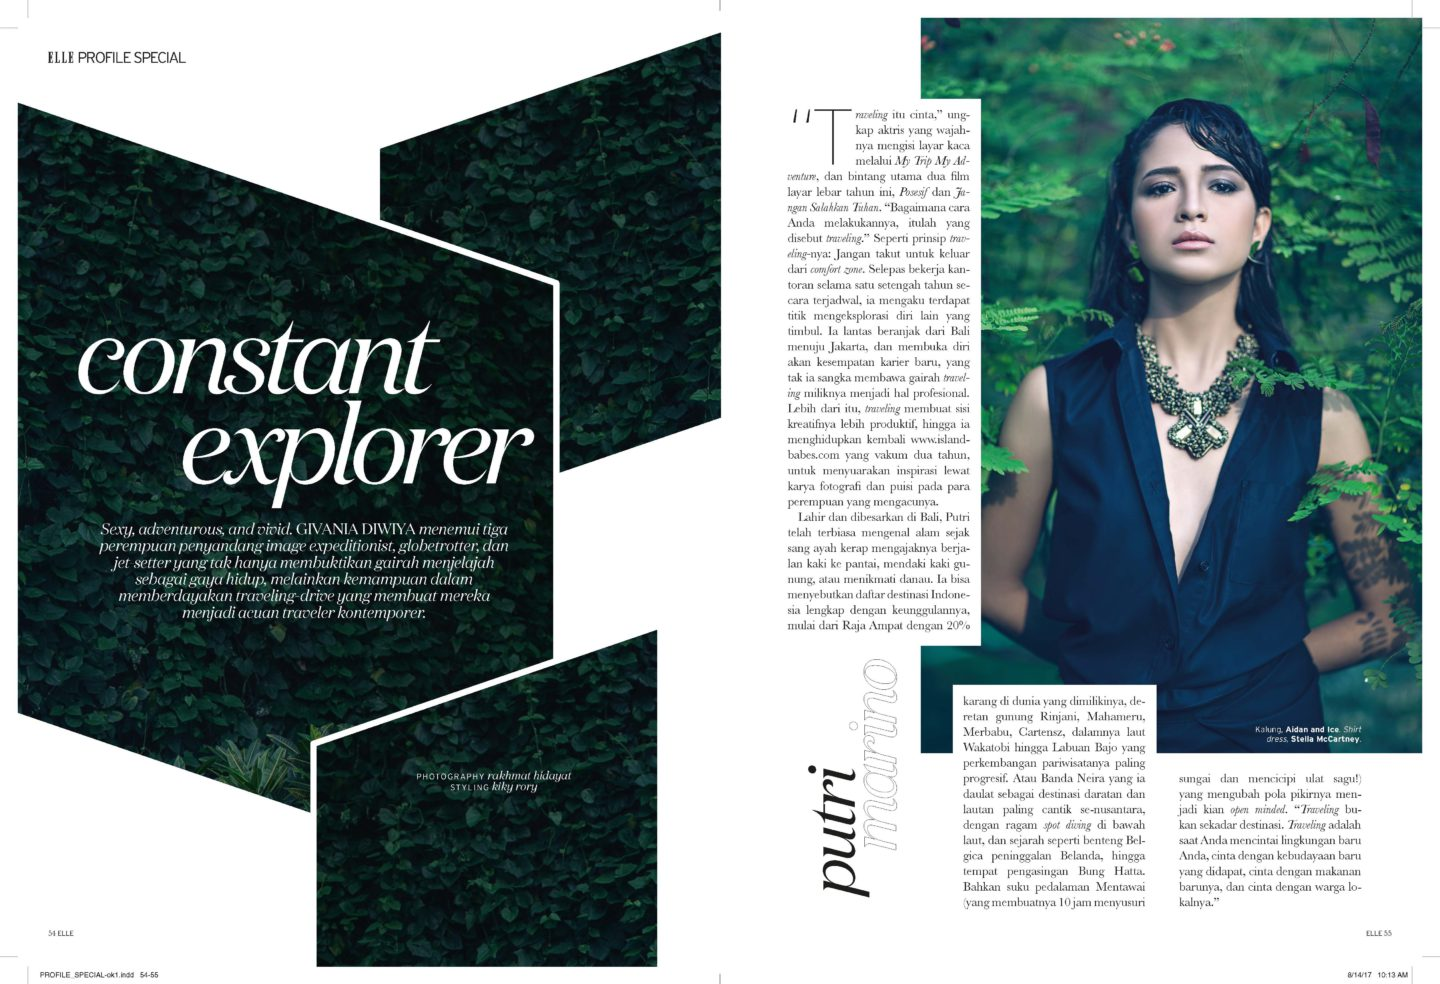 ELLE Indonesia Profile Special Agustus 2017_Page_1